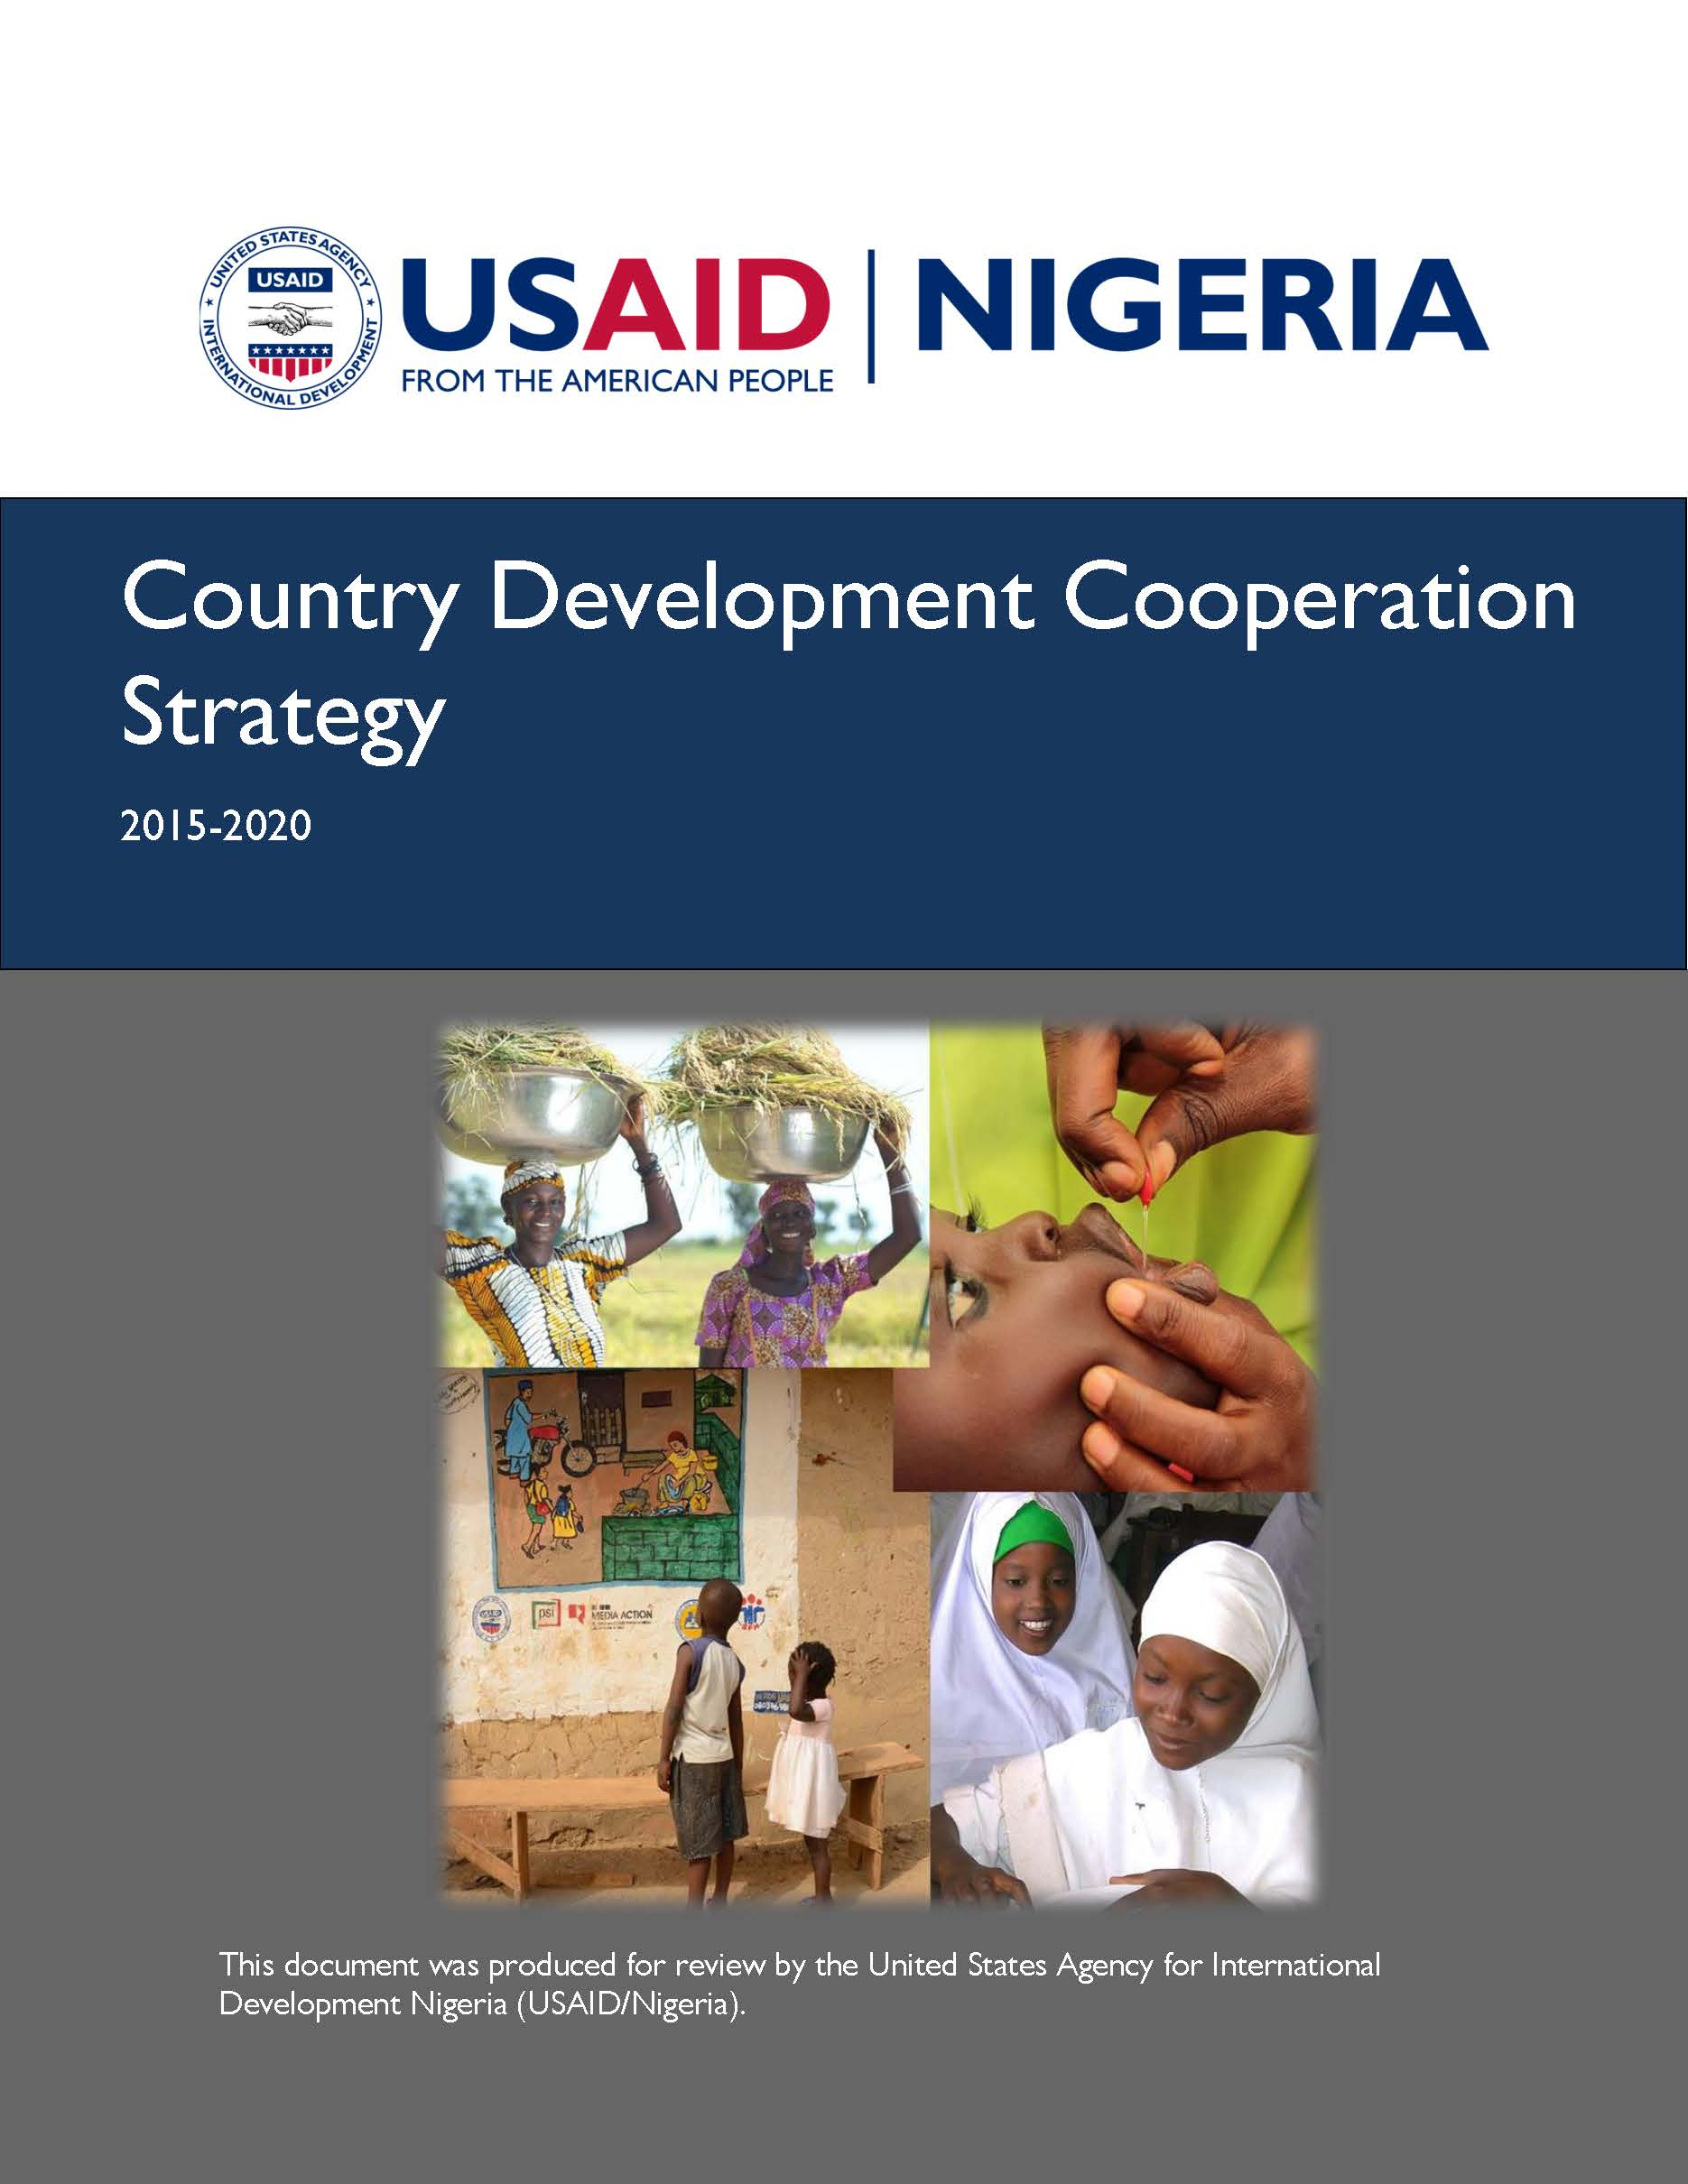 Nigeria Country Development Cooperation Strategy 2015-2020